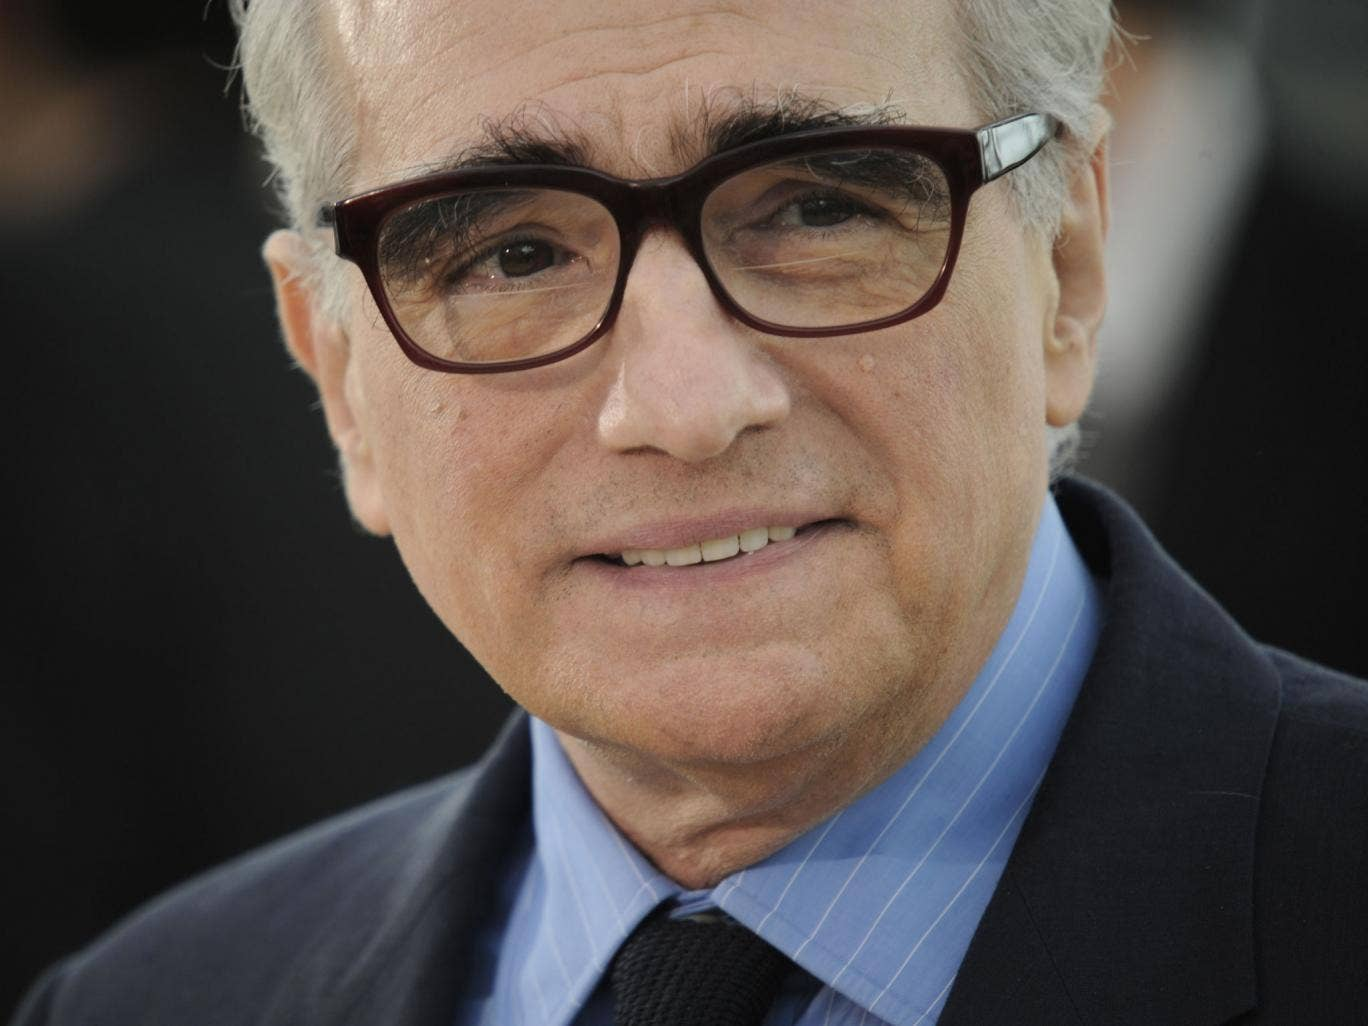 Martin Scorsese is on board to direct Ashecliffe for HBO and Paramount